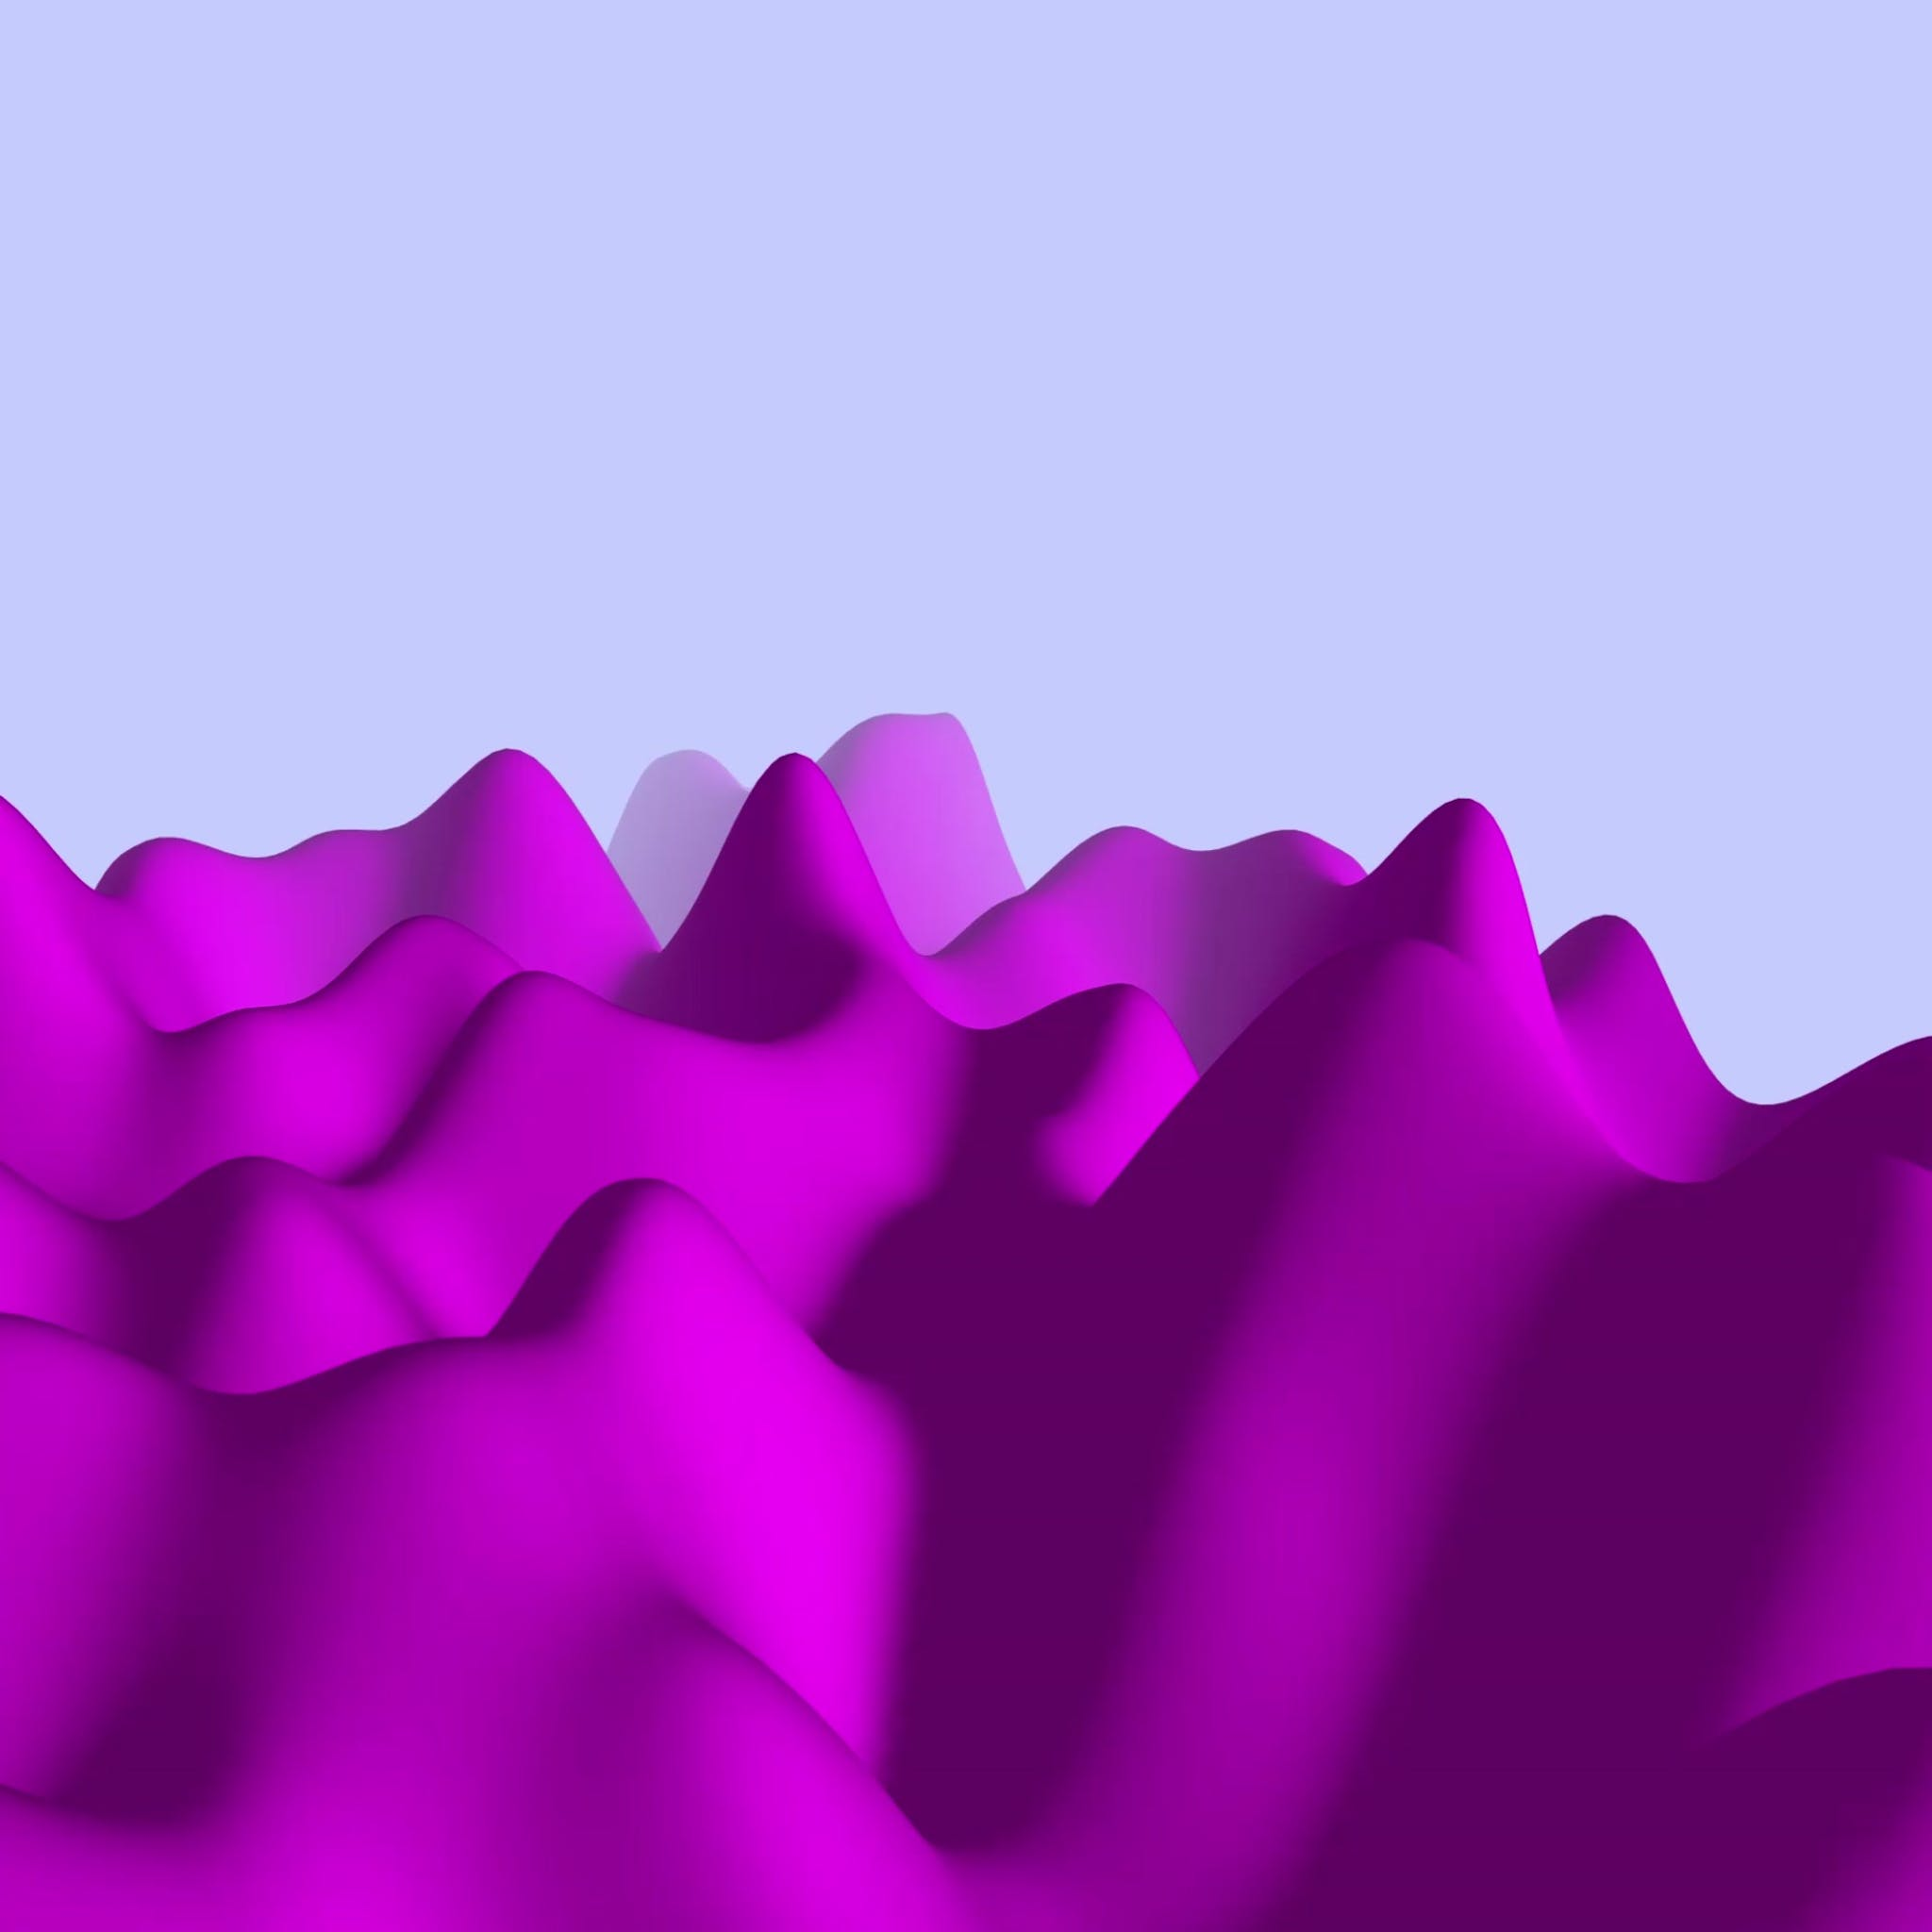 Pink mountains generated by code